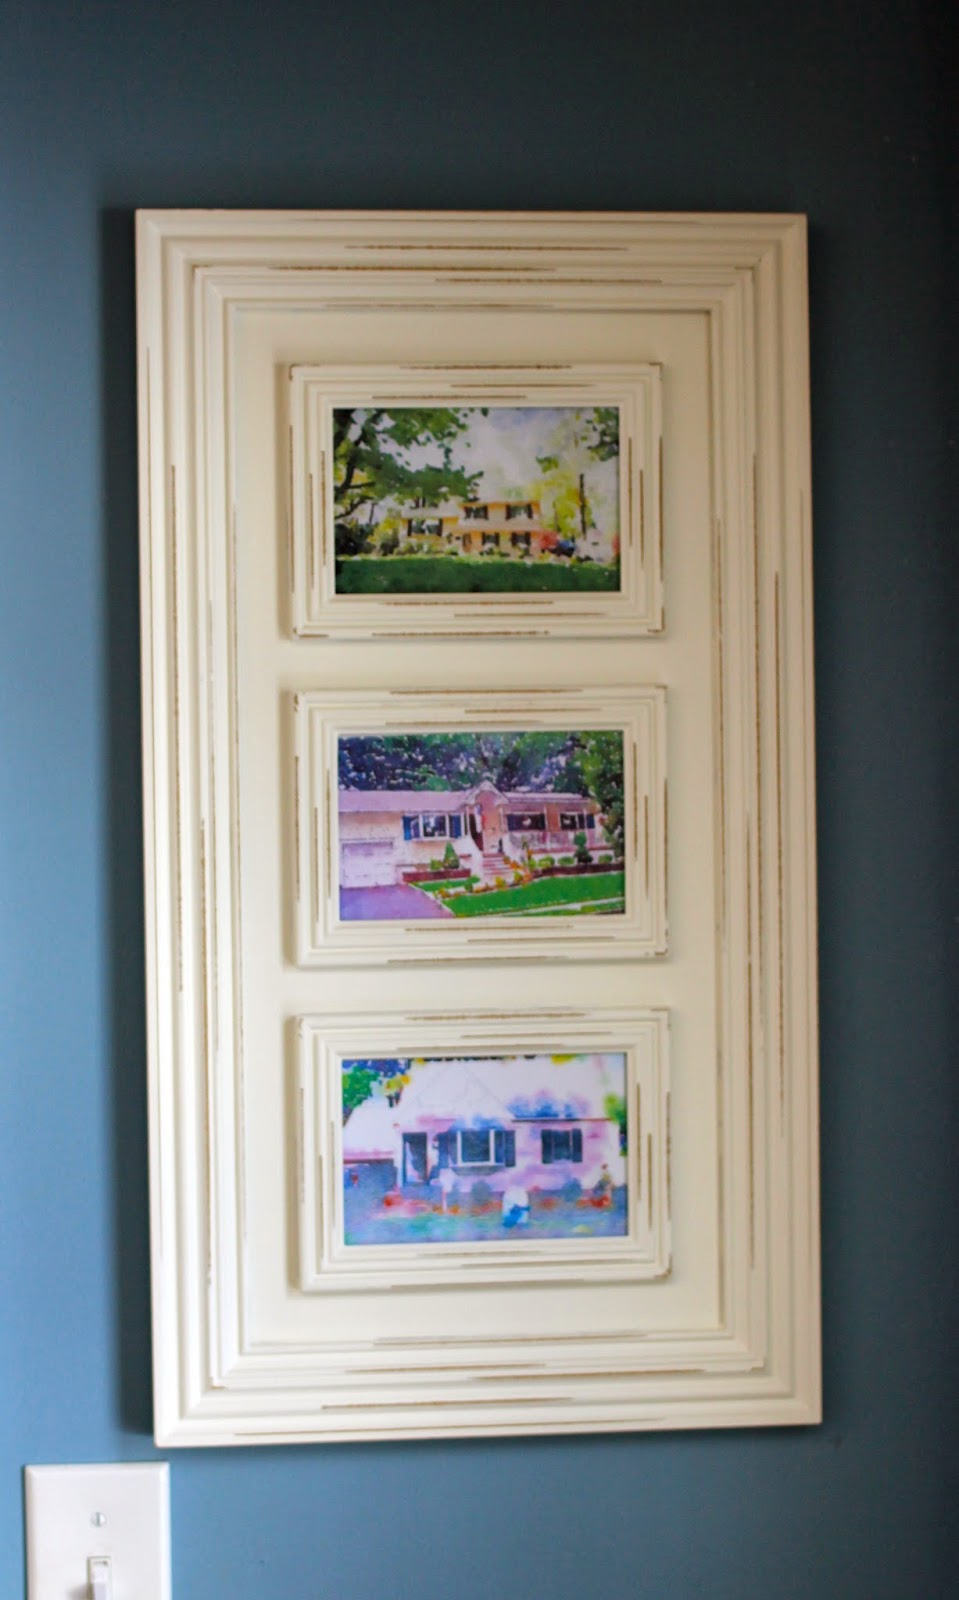 Golden Boys and Me: Target Clearance Frames & Waterlogue prints